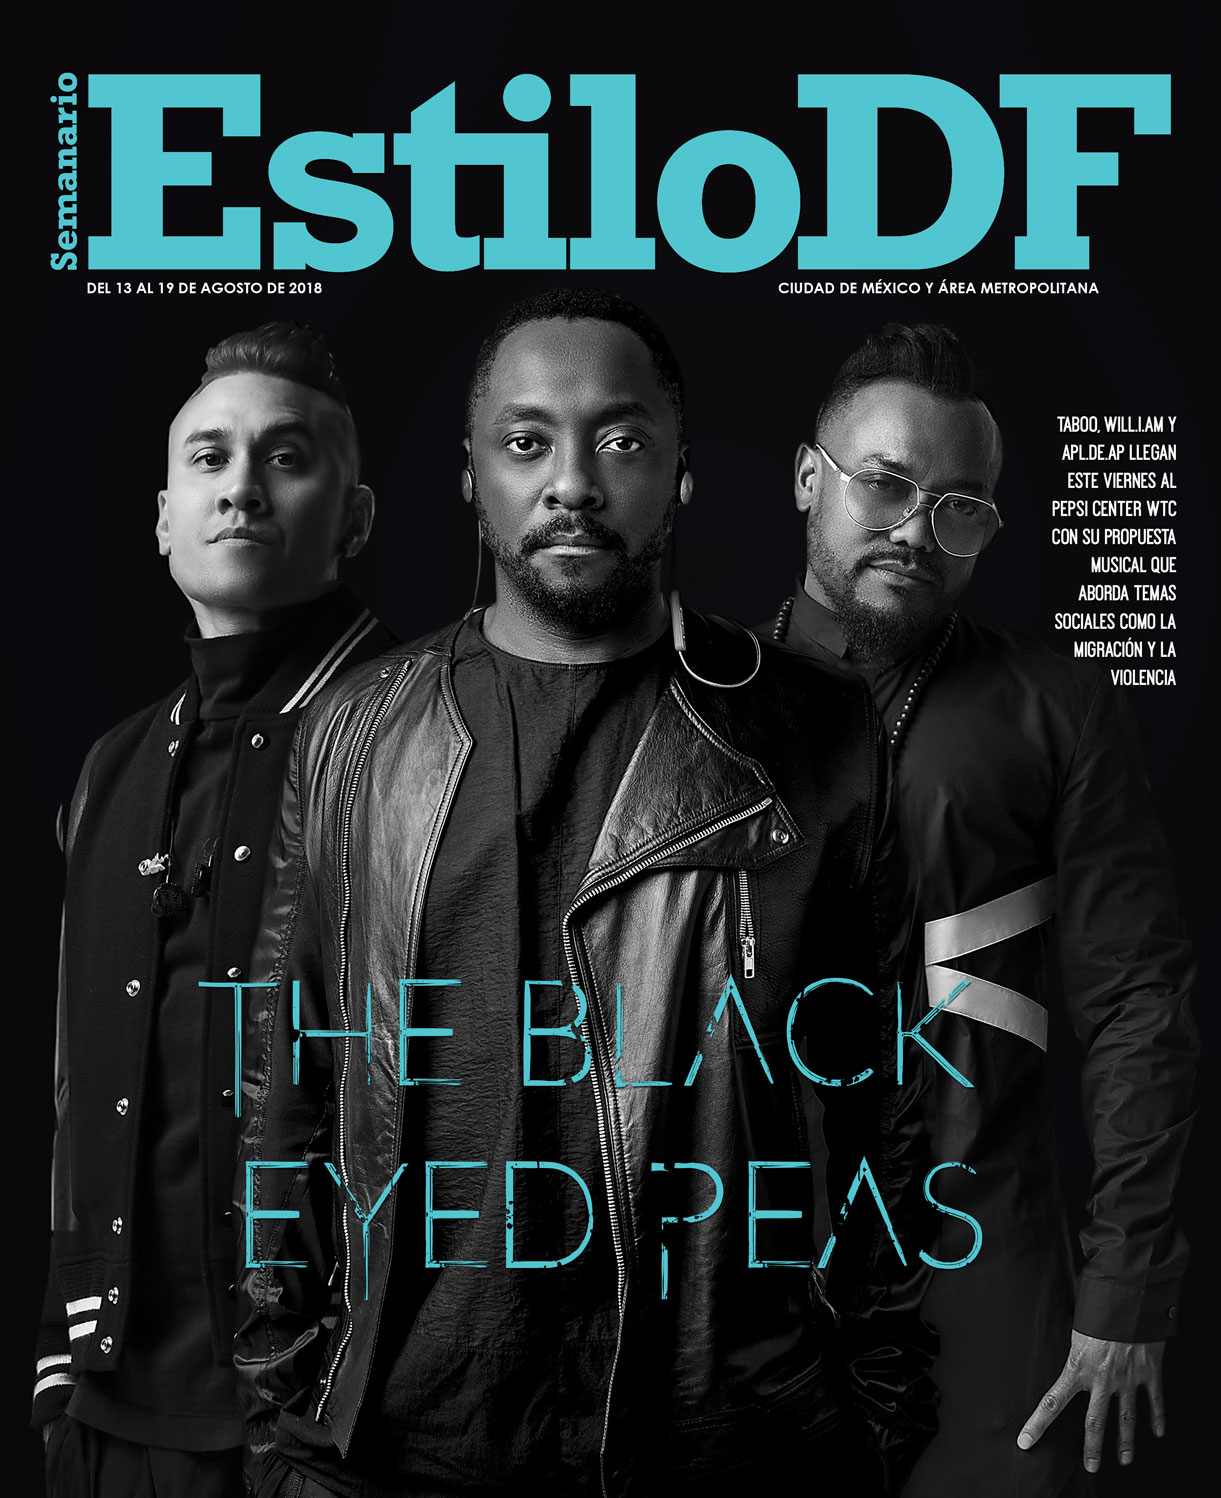 Portada-Web-The-Black-Eyed-Peas